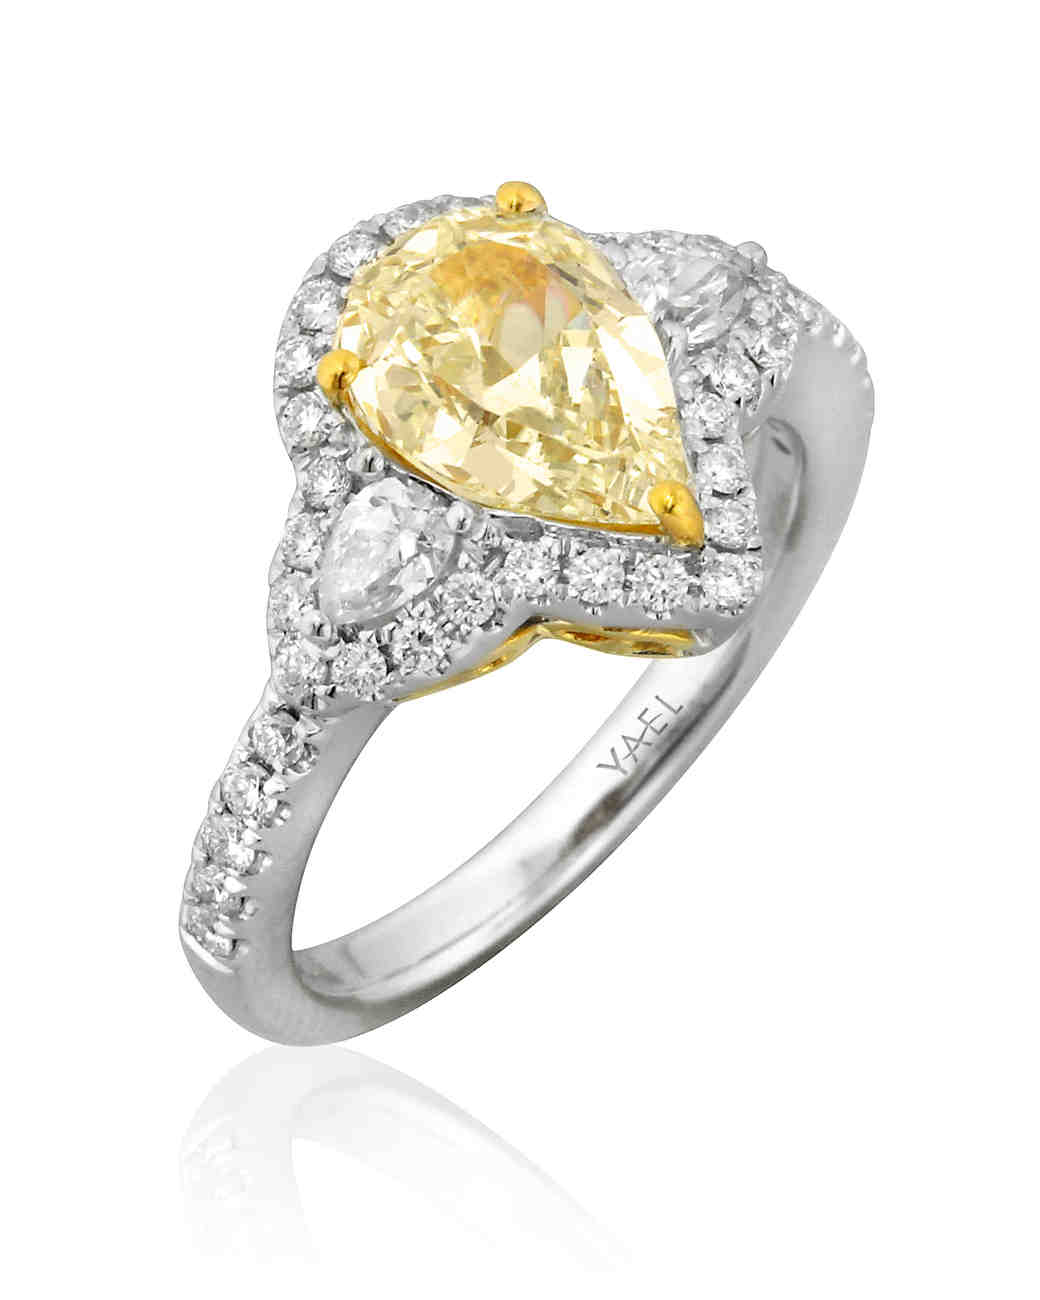 Yael Designs Pear-Cut Engagement Ring